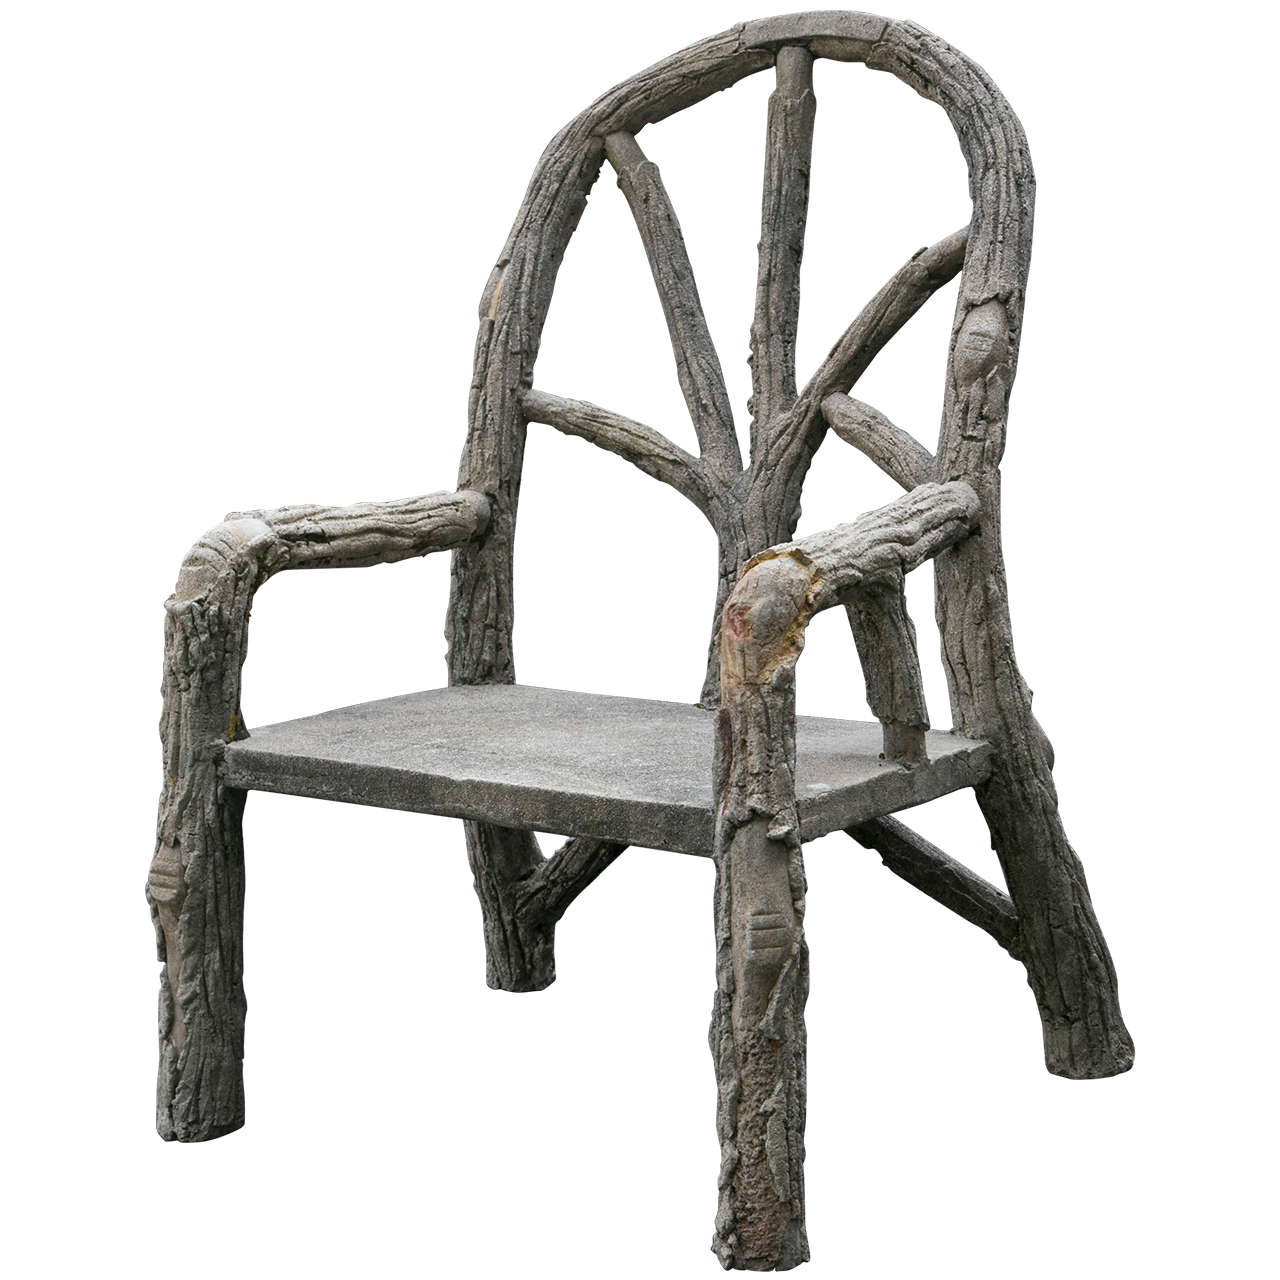 Unique oversized faux bois armchair for sale at 1stdibs for Oversized armchairs for sale